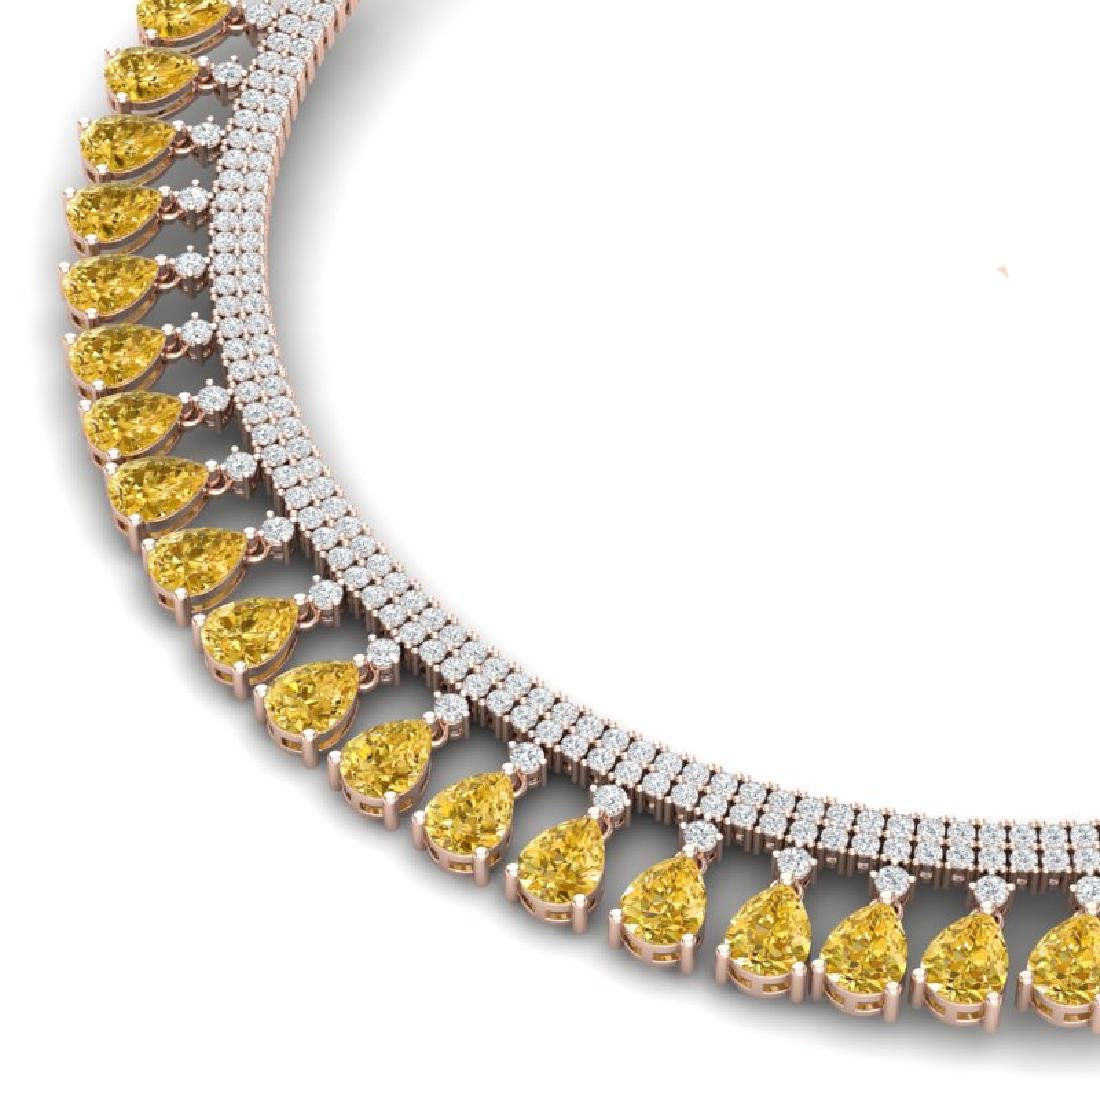 39.66 CTW Royalty Canary Citrine & VS Diamond Necklace - 2